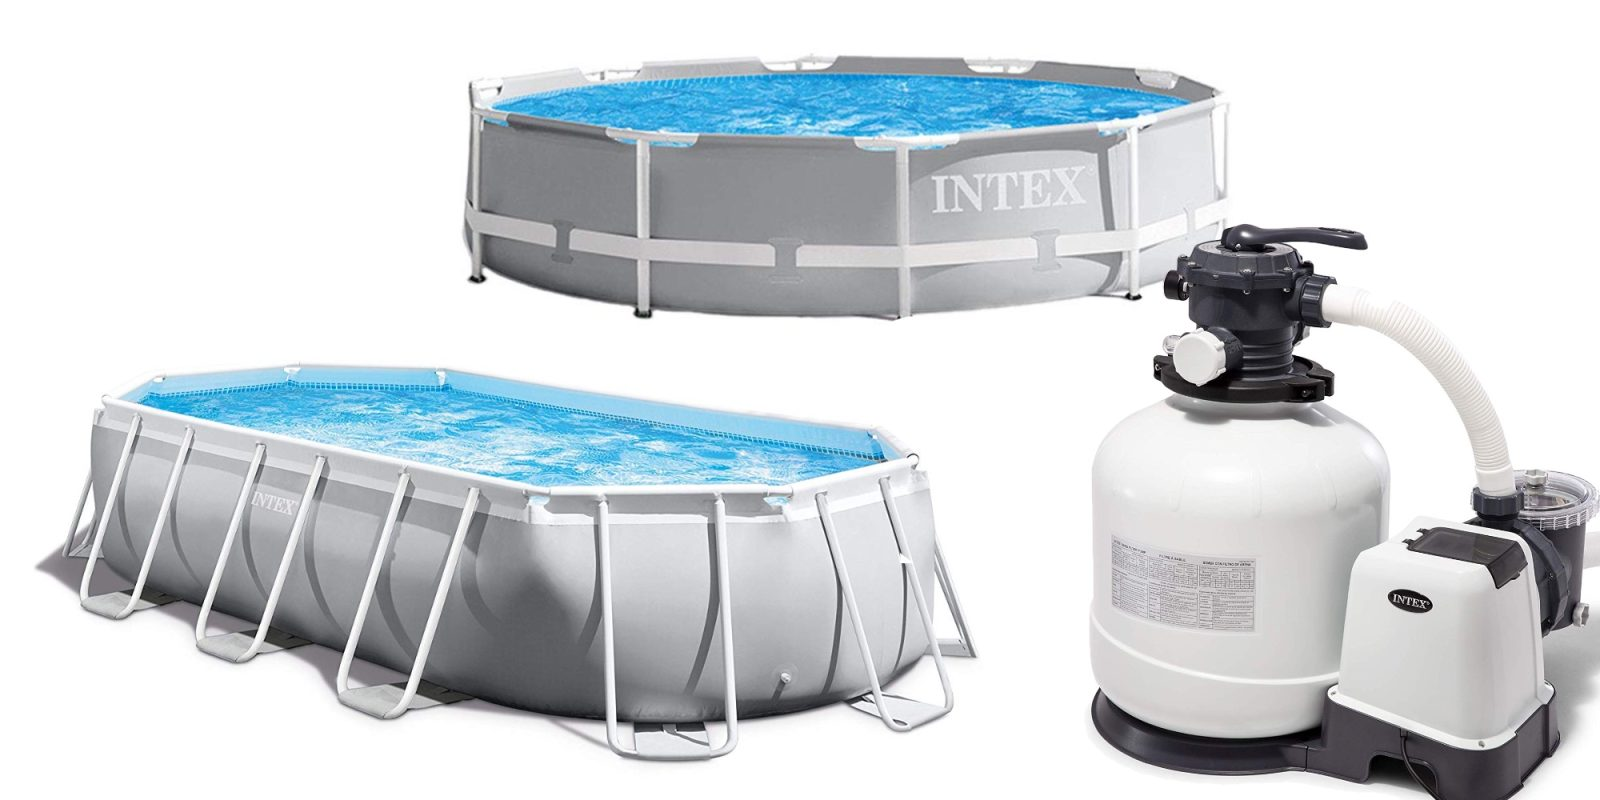 Save 25% or more on Intex Above Ground Pools and accessories ...